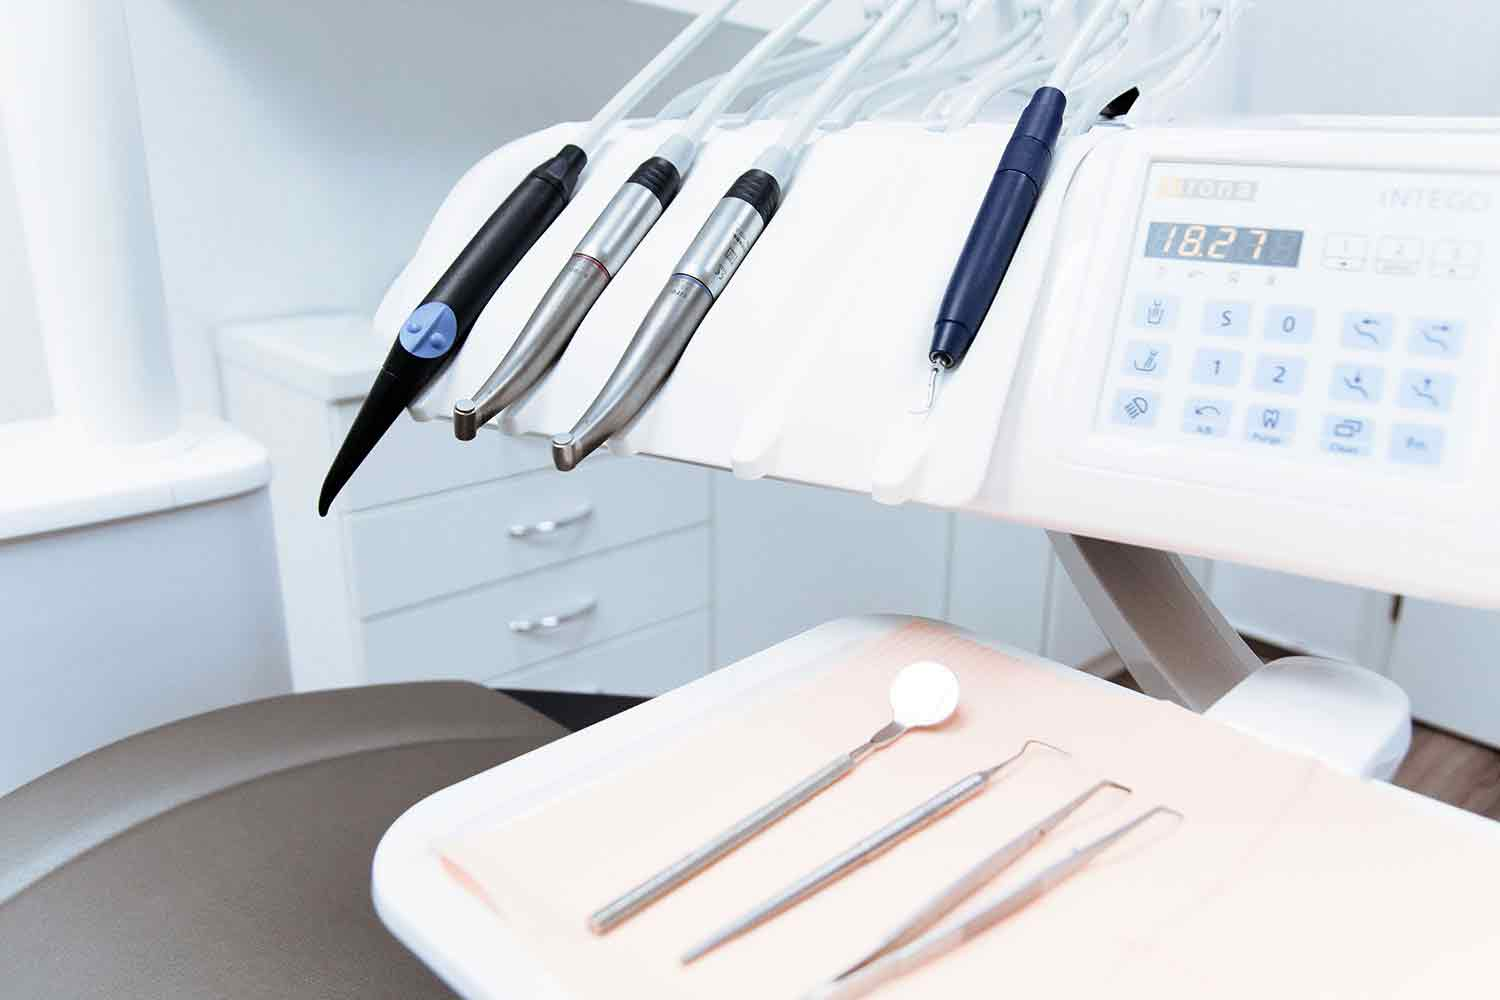 DENTAL PRODUCT IS OUR FORTE